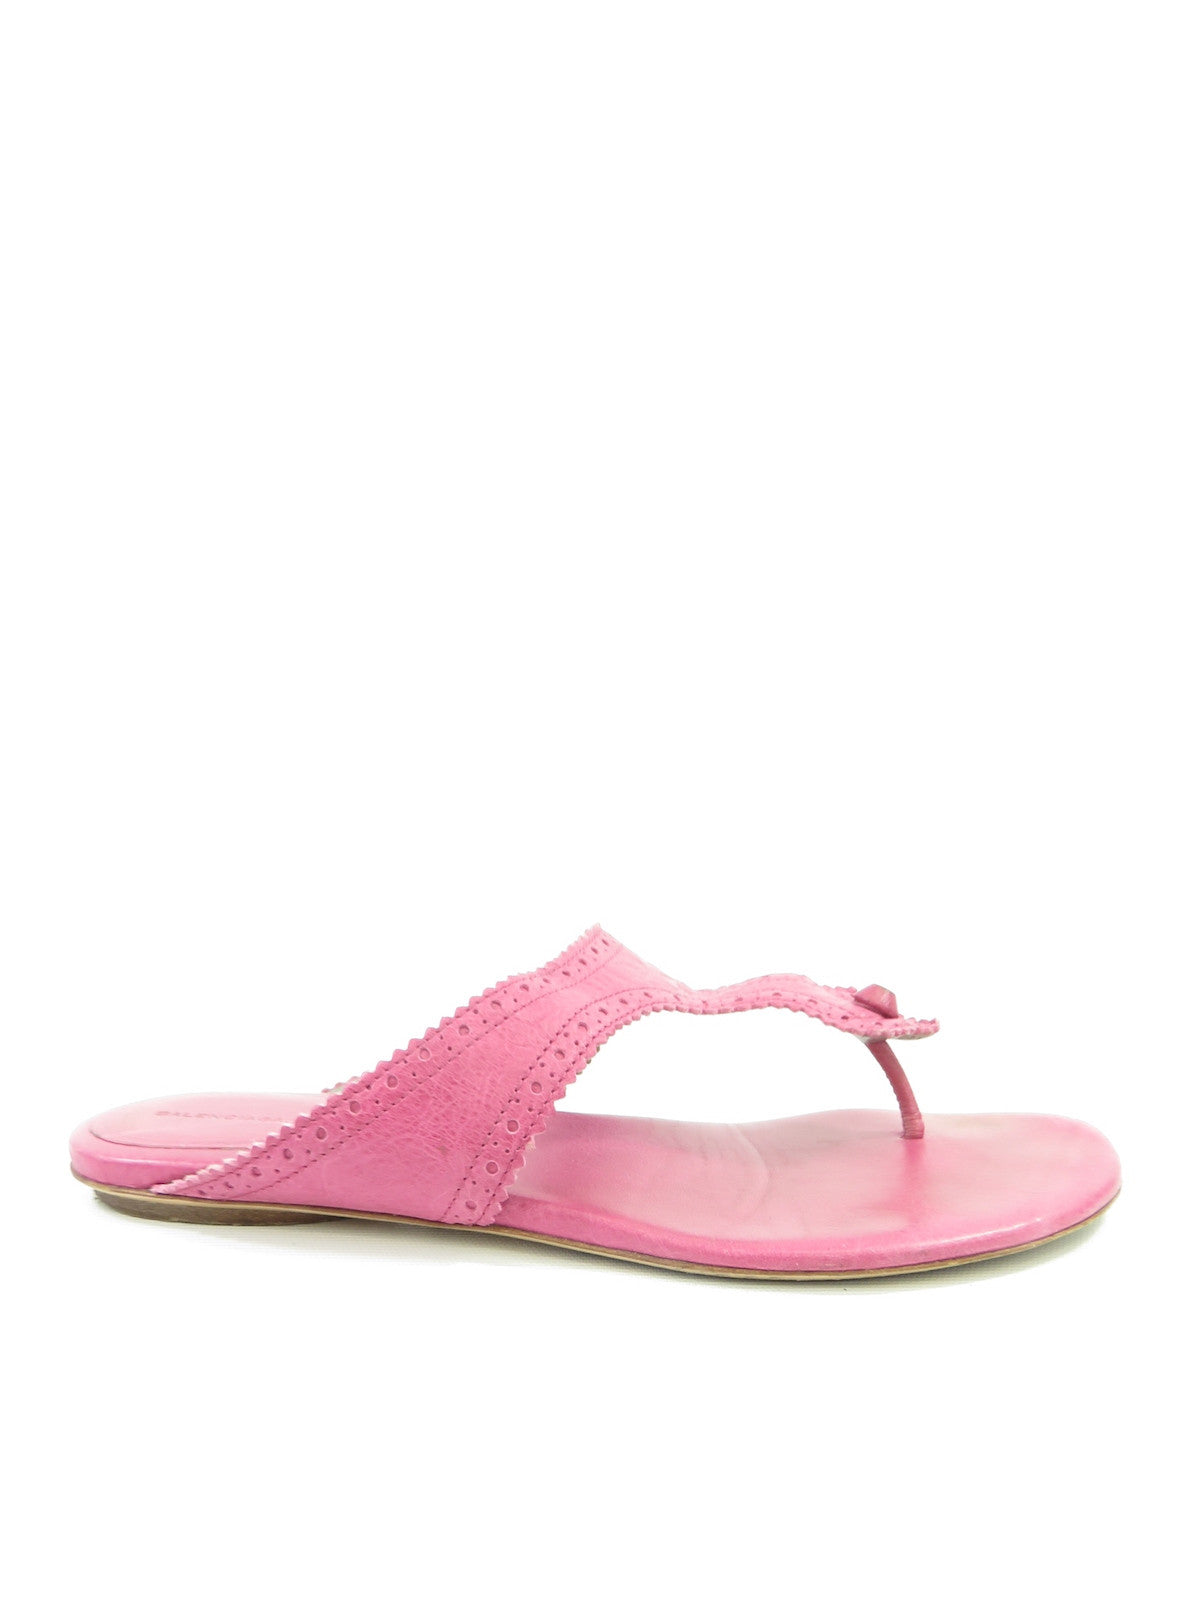 55539fc6d78 BALENCIAGA Women Pink Leather Thong Sandals Flip Flops Fats Size 39